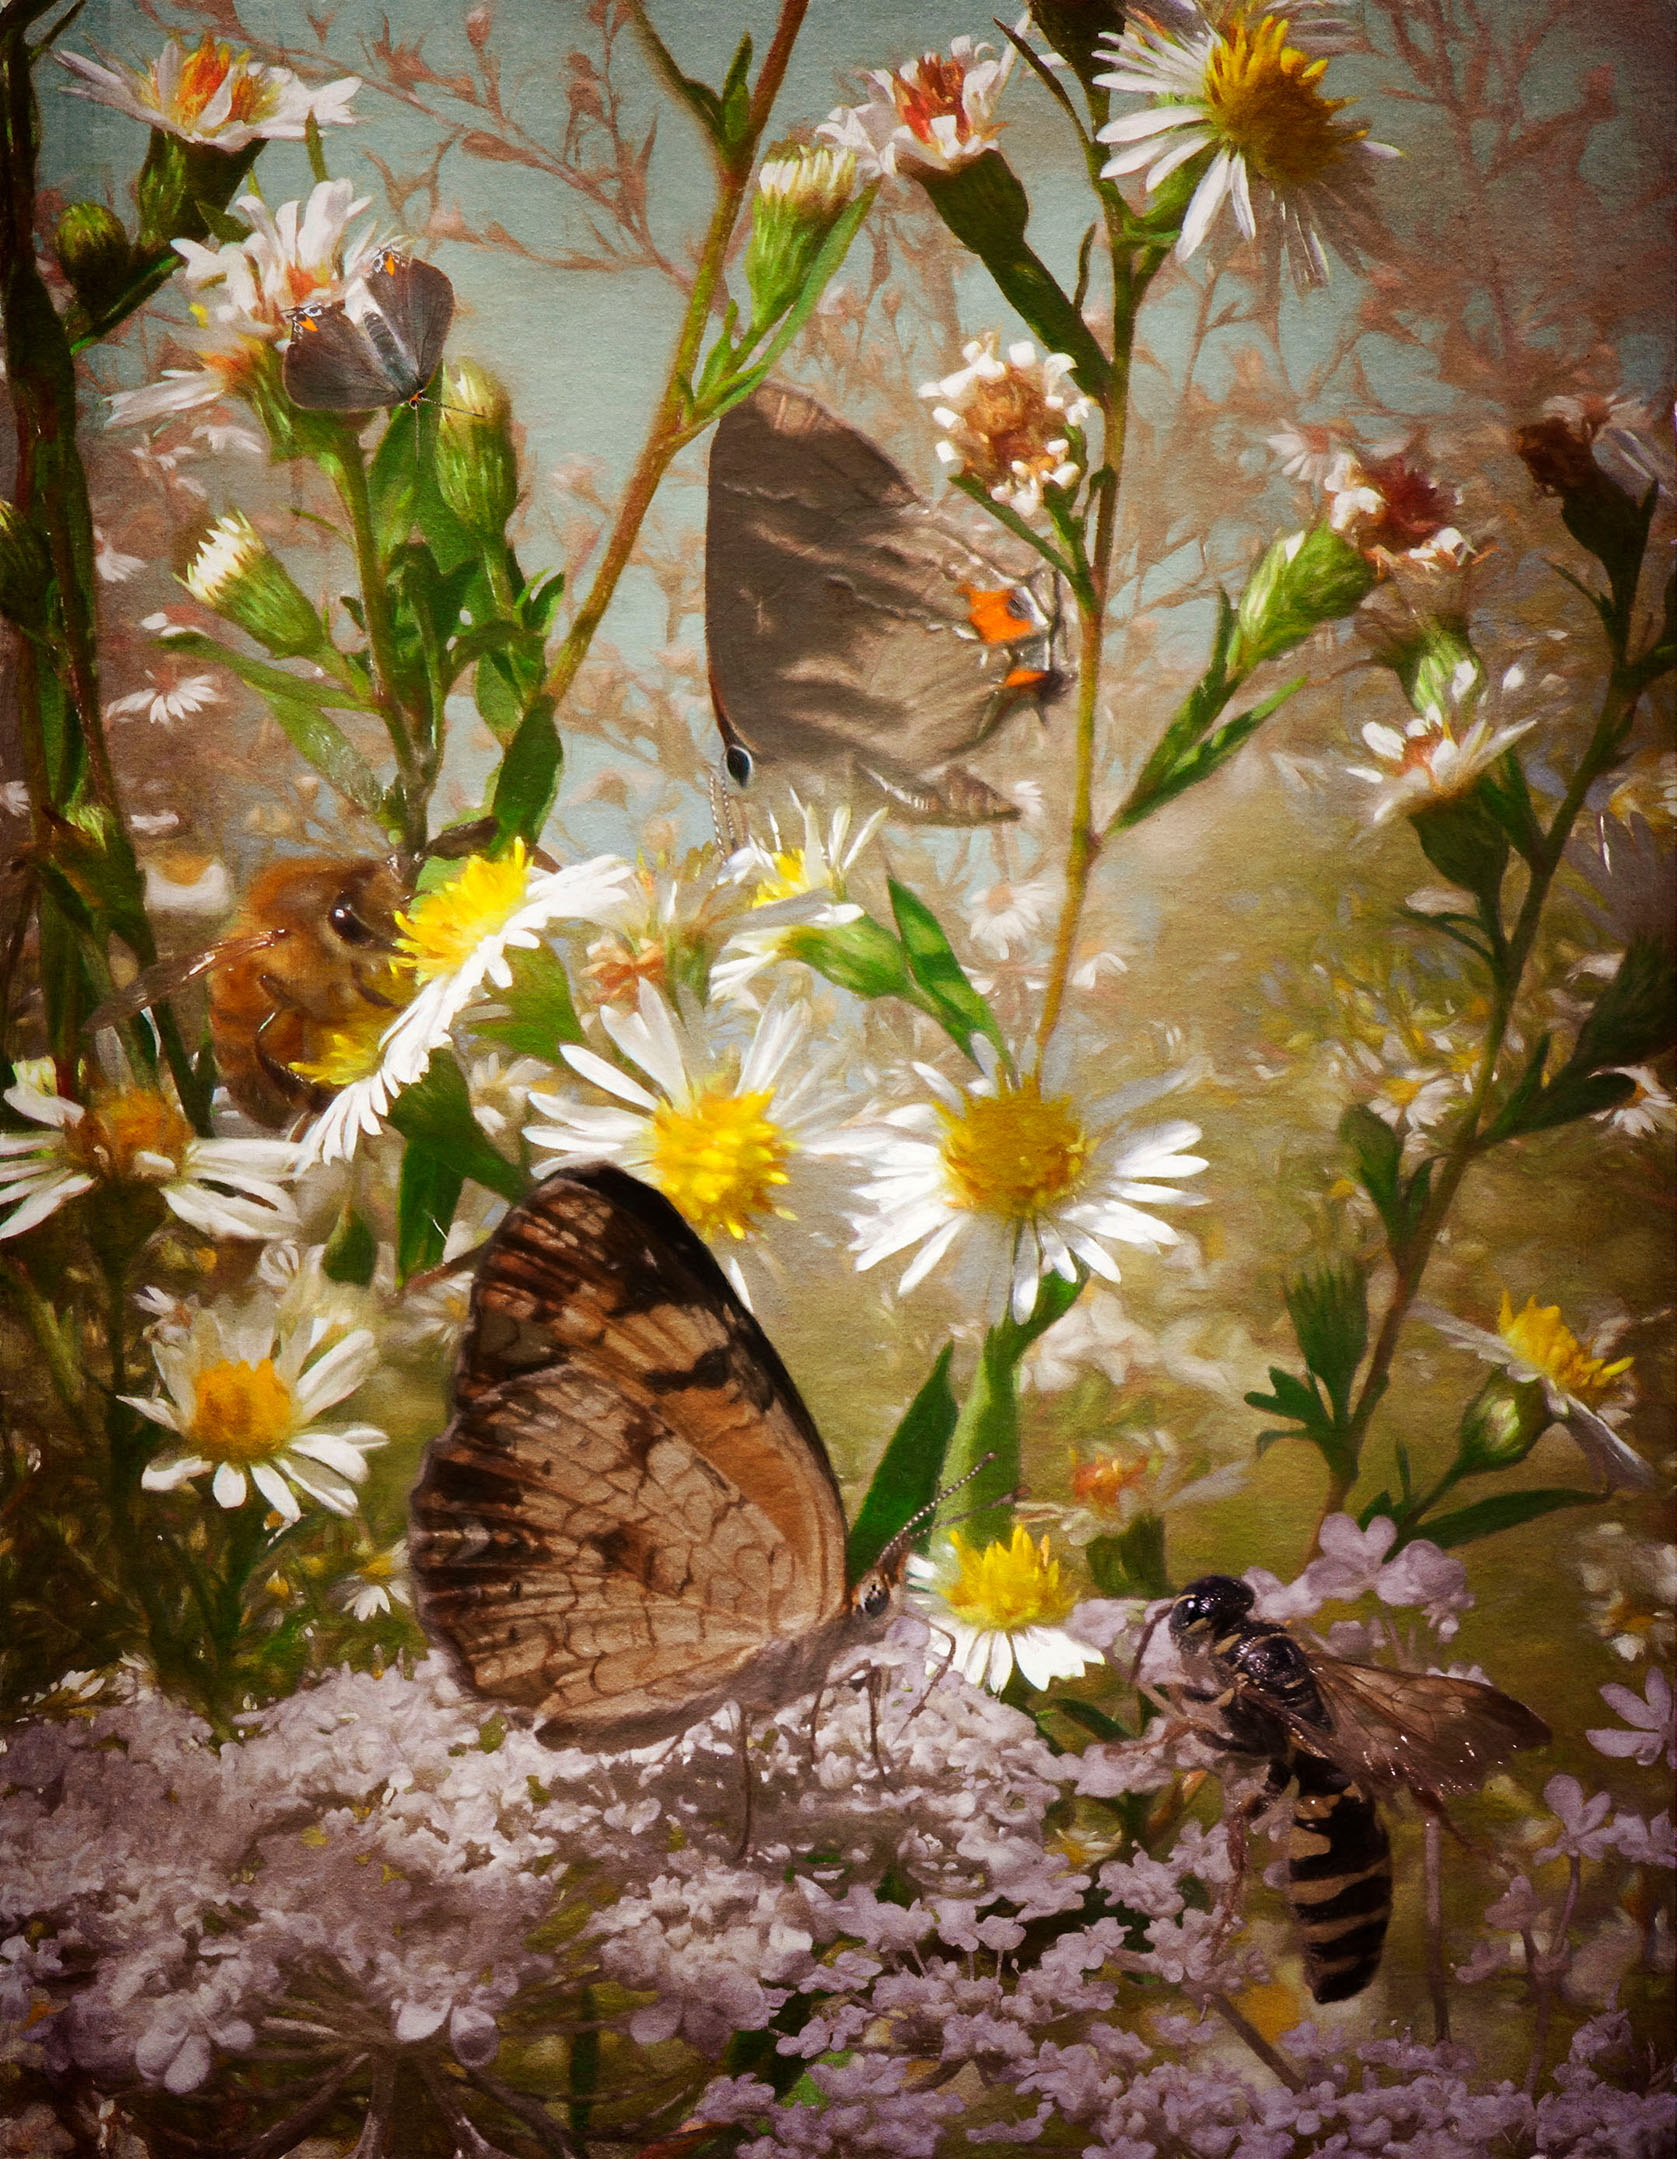 In the Shadows of Flowers - Archival Pigment Print on Hahnemühle Fine Art Rag25